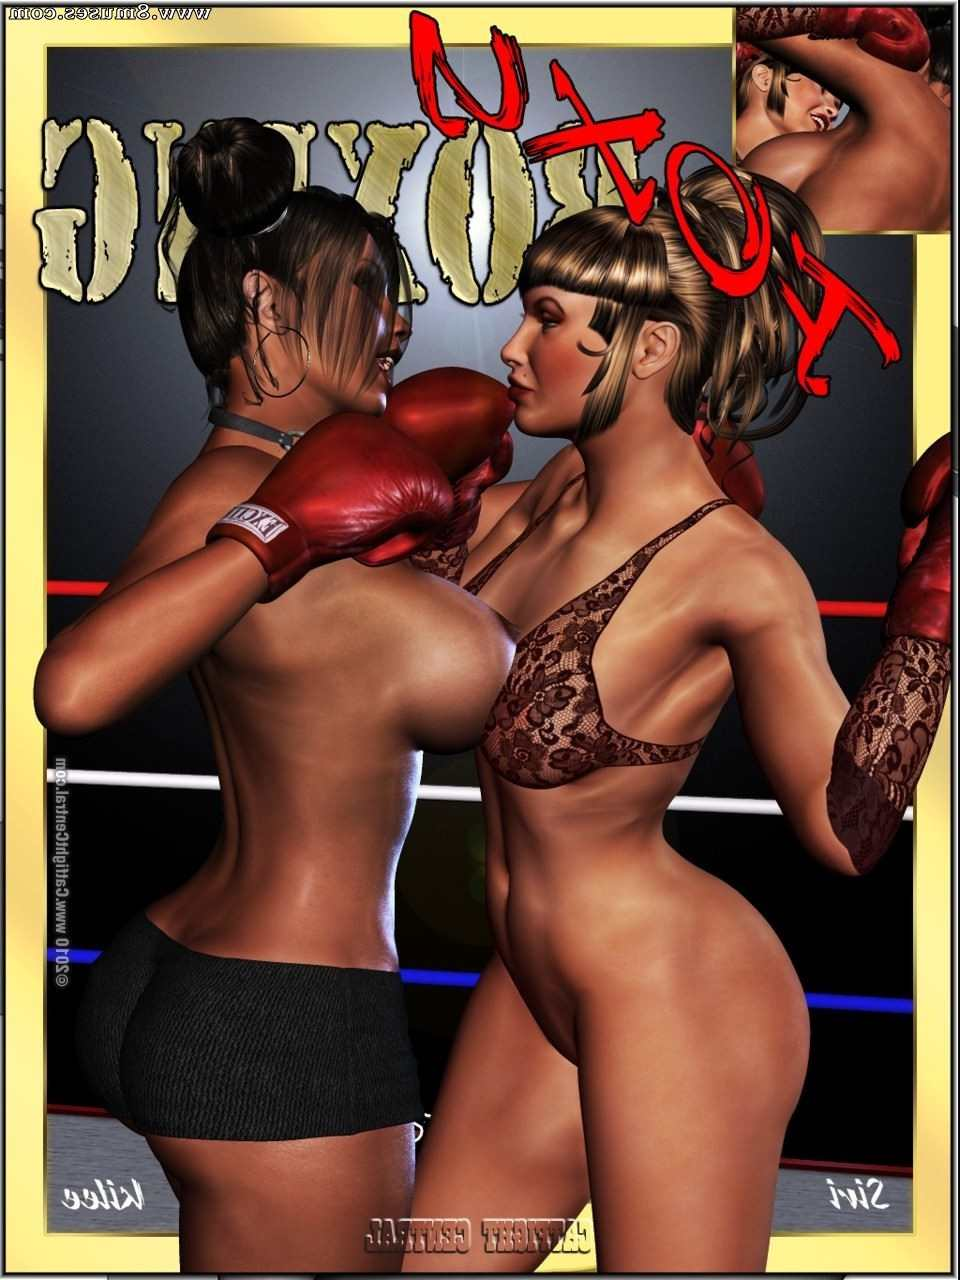 Central-Comics/Catfight-Central/Foxy-Boxing-Siri-vs_-Kilee Foxy_Boxing_-_Siri_vs_Kilee__8muses_-_Sex_and_Porn_Comics.jpg